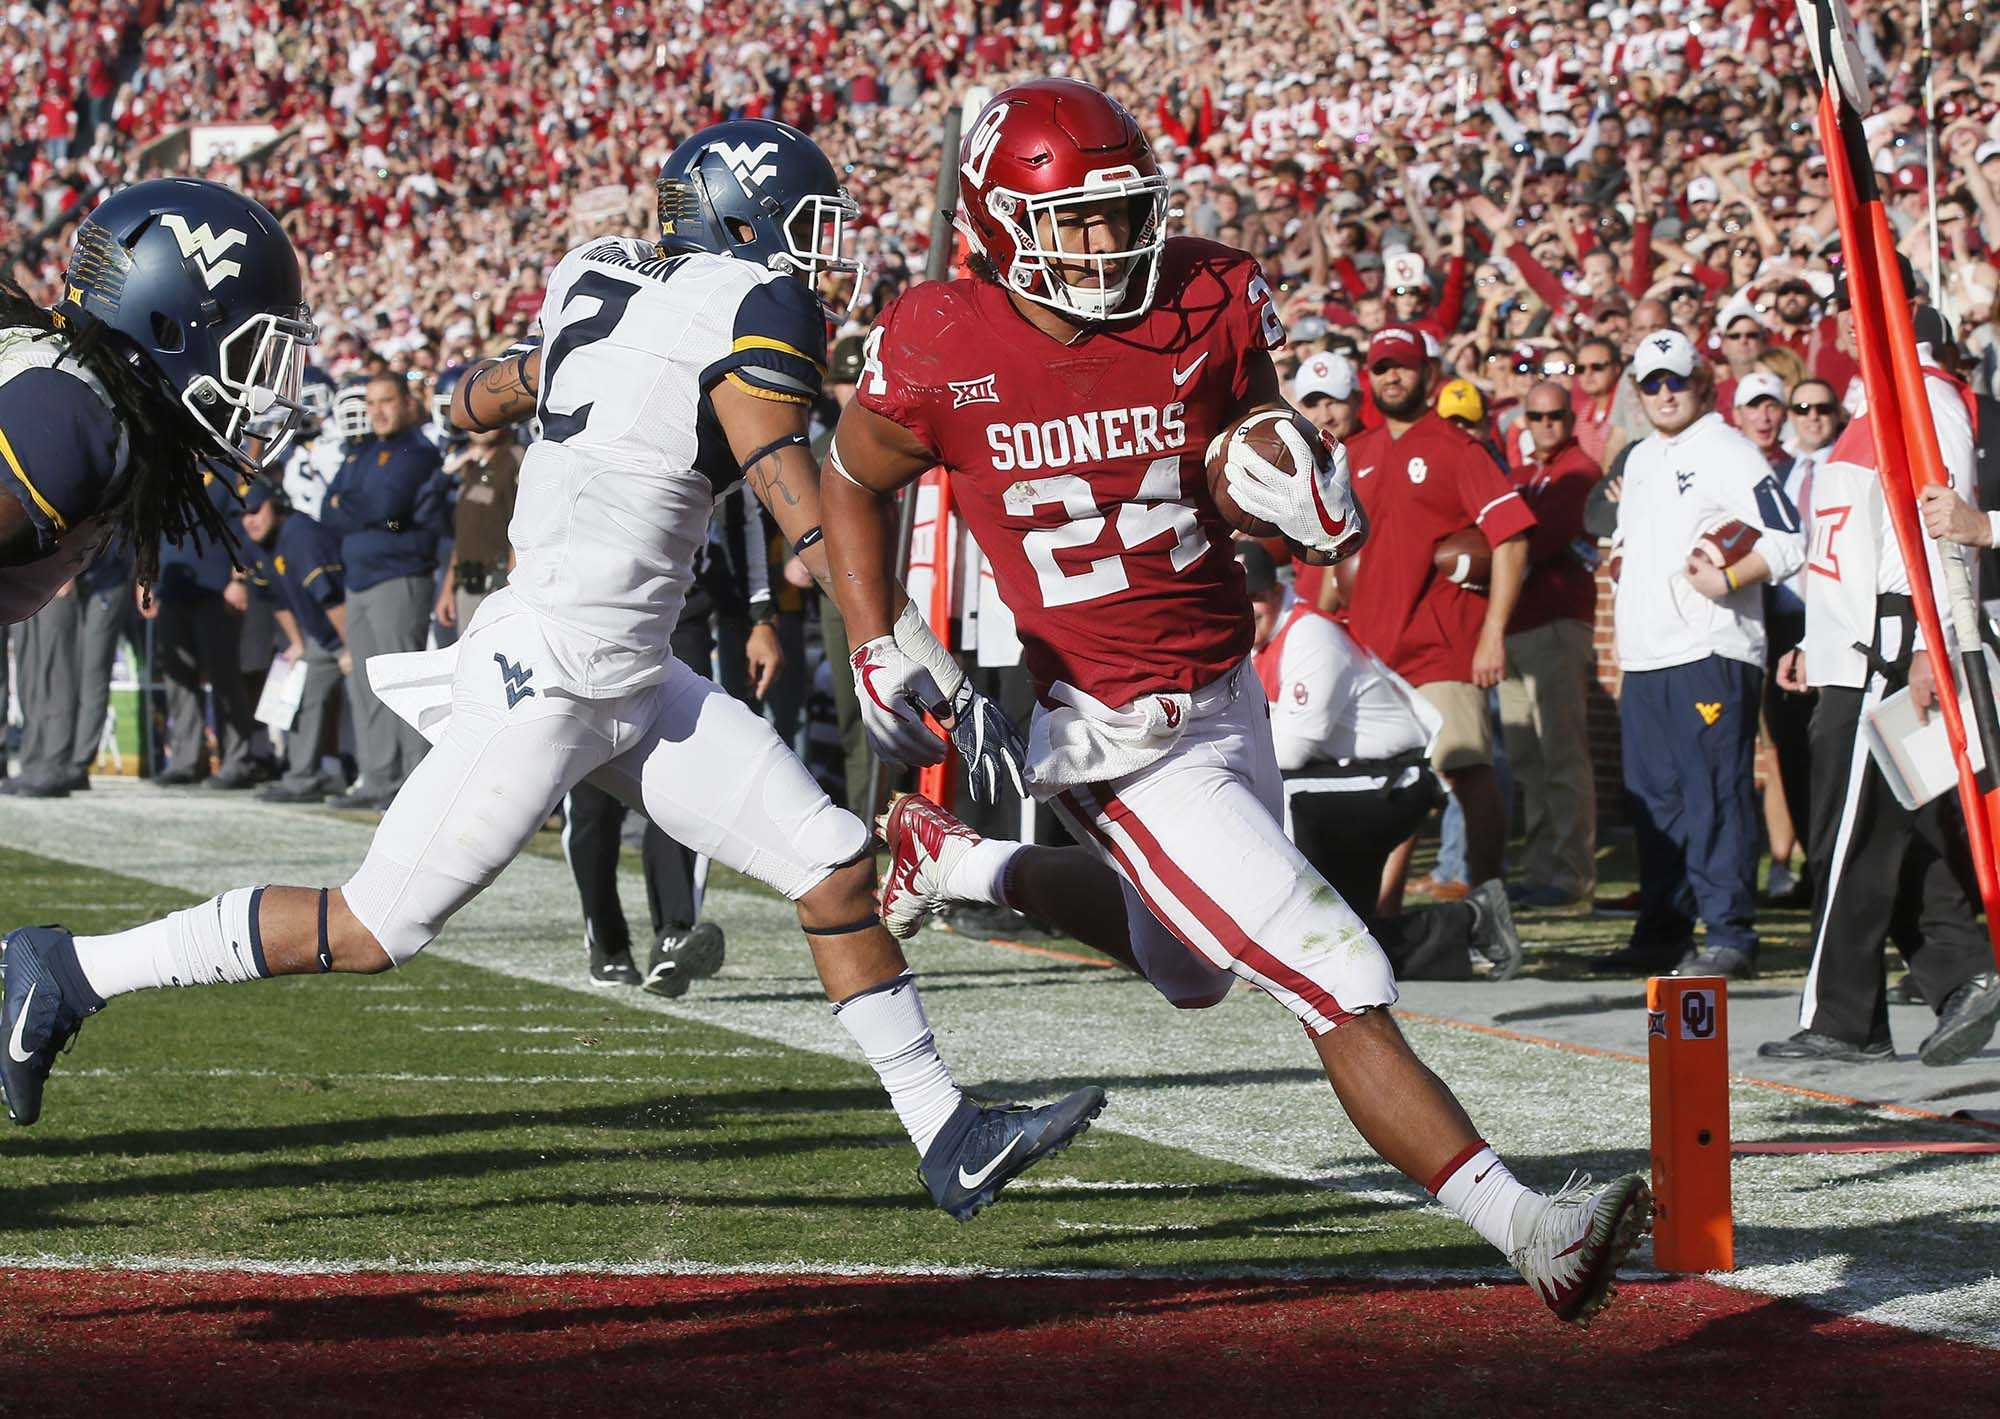 Protection order filed against Oklahoma's leading rusher